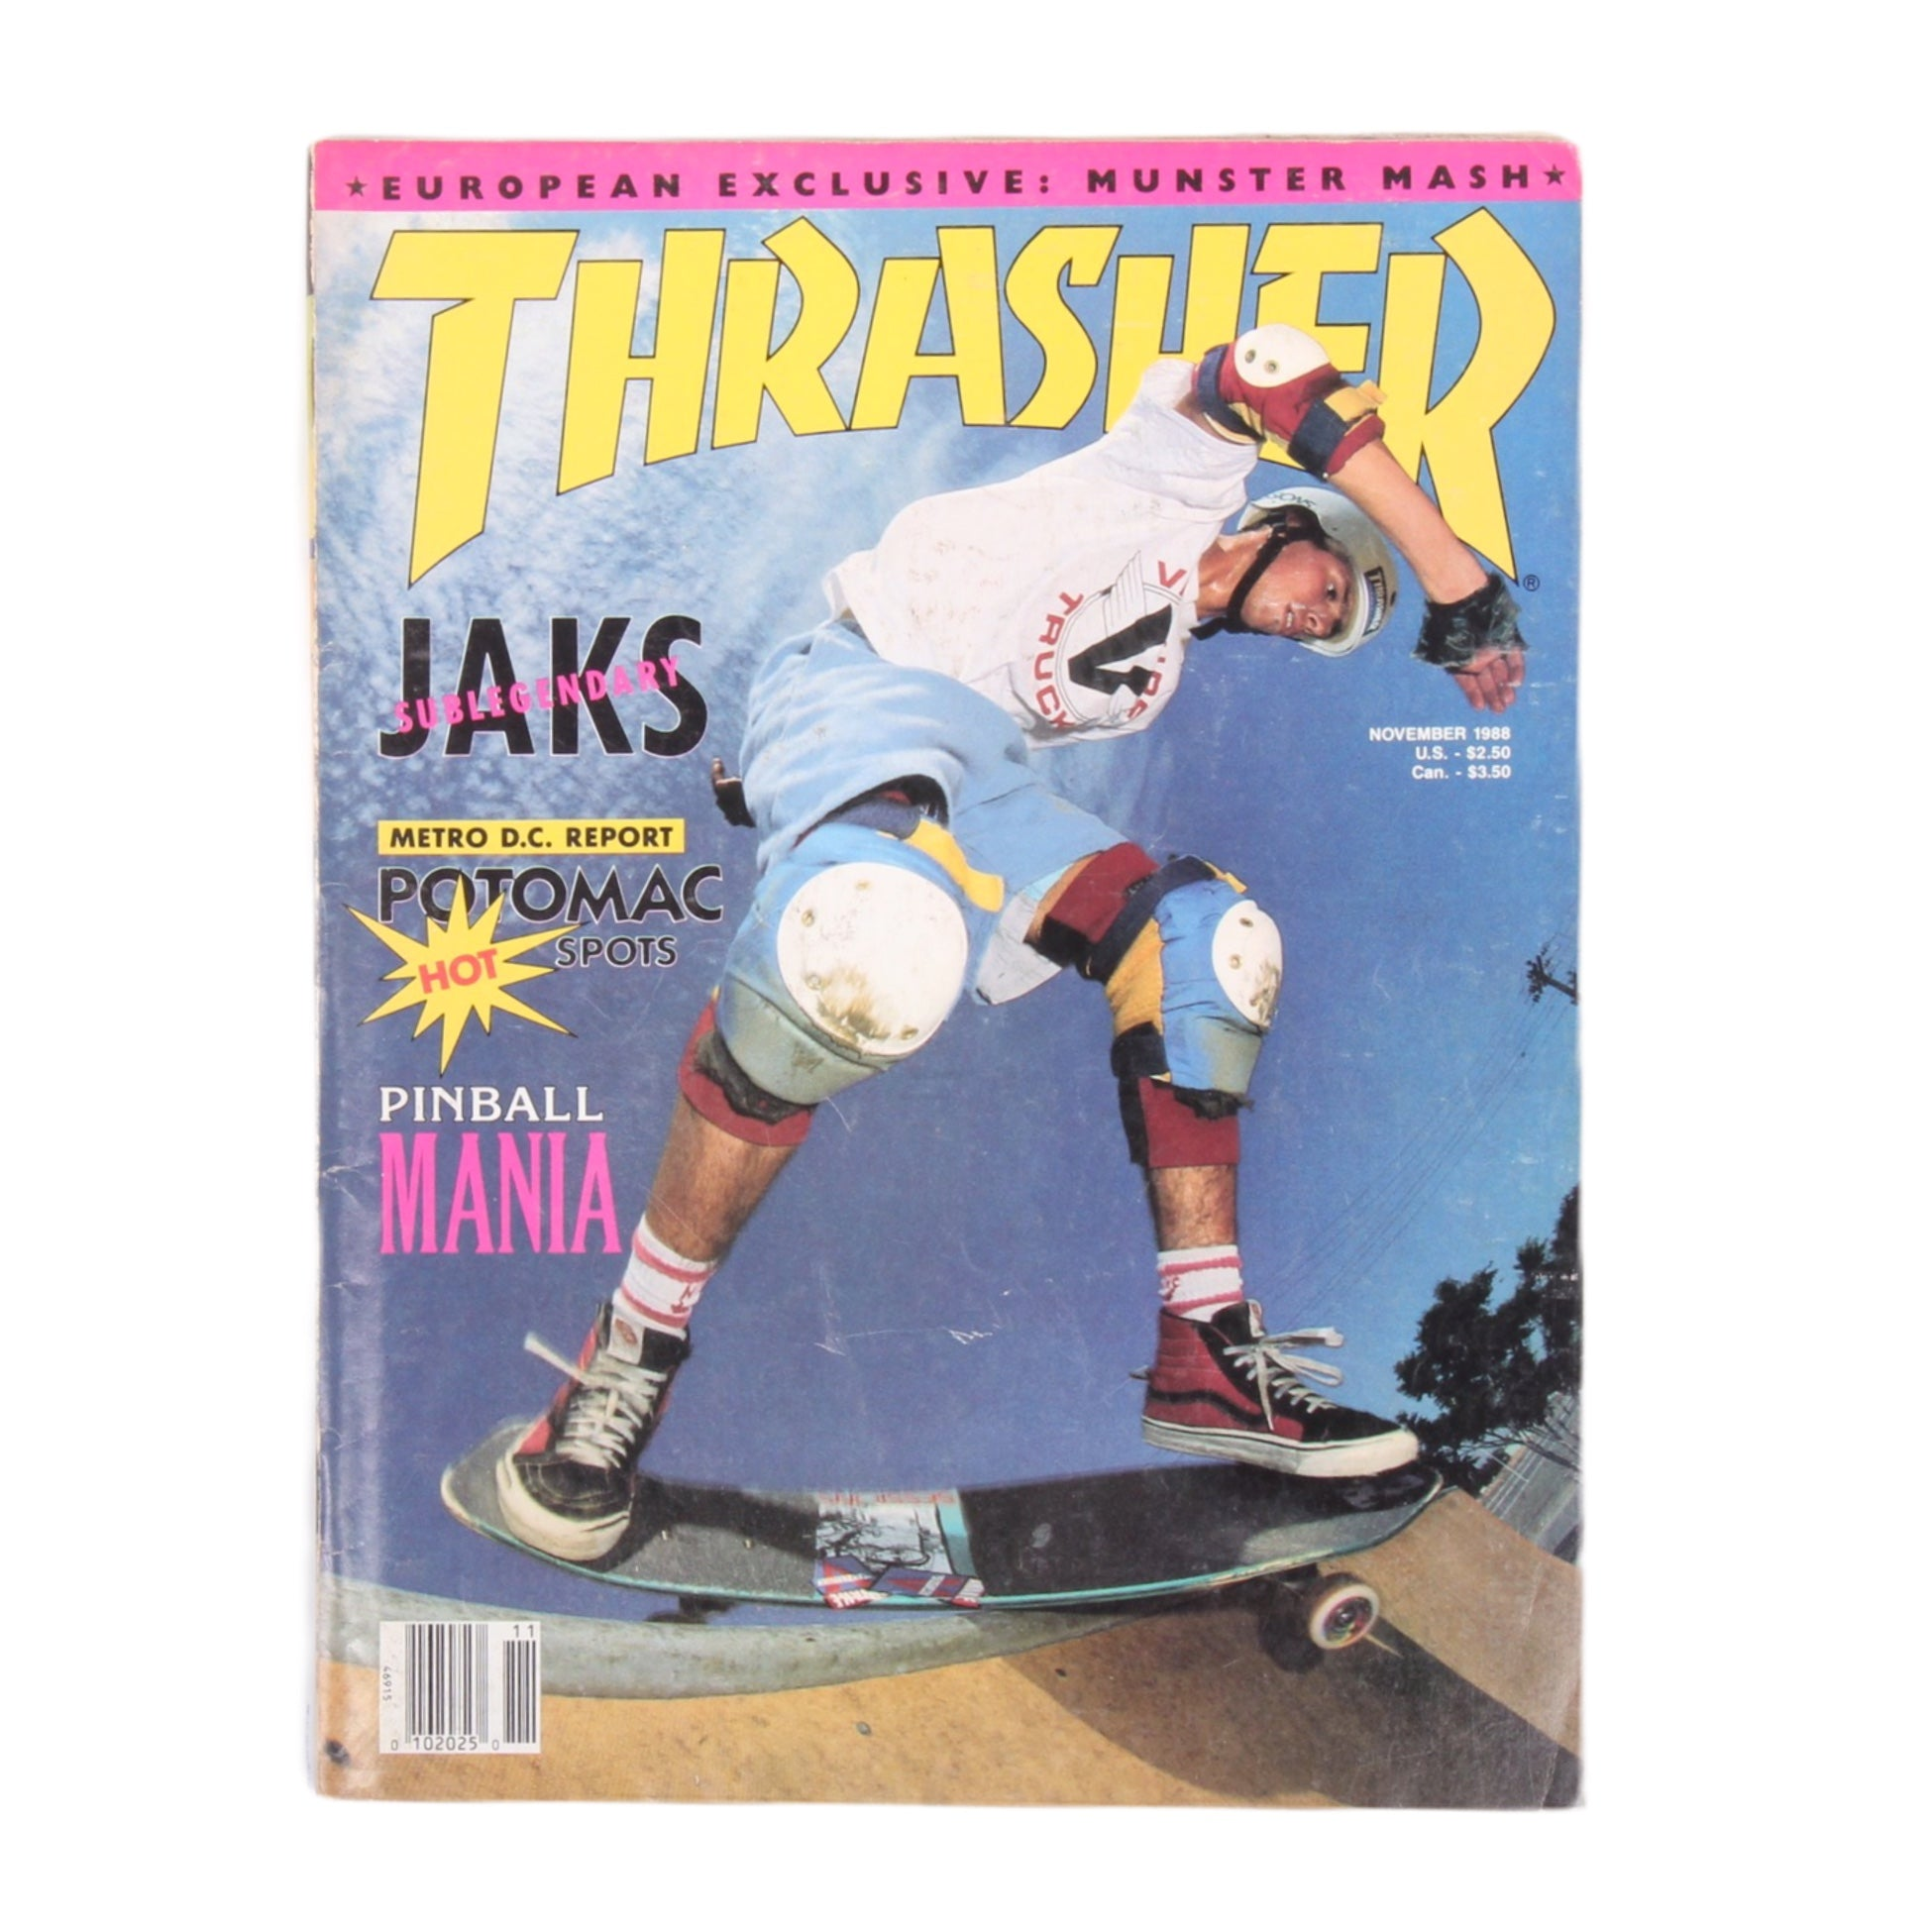 Overripe Thrasher Magazine Nov 1988